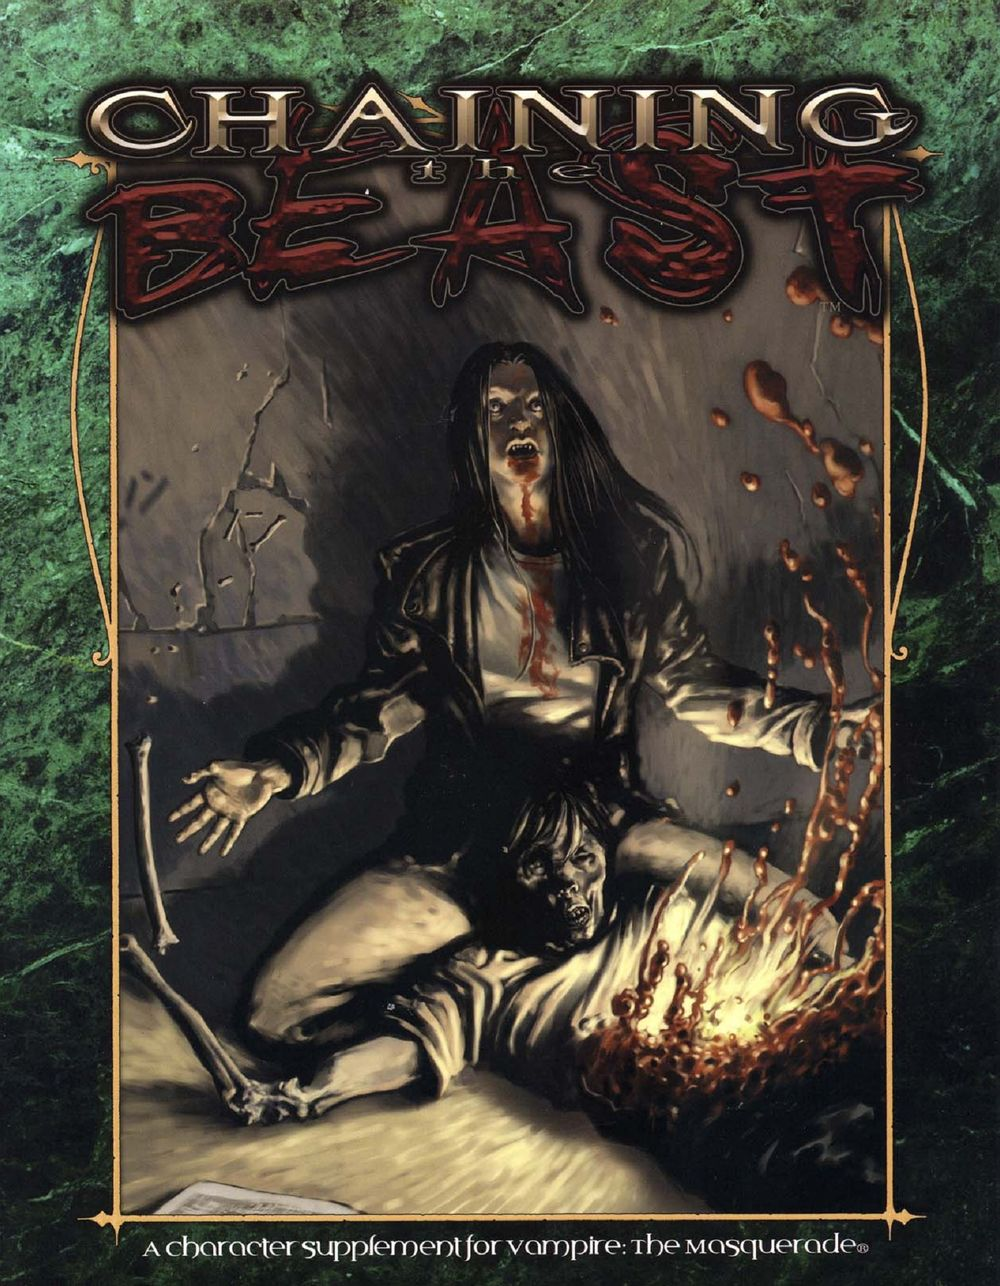 Chaining_the_Beast_-_book_cover.jpg